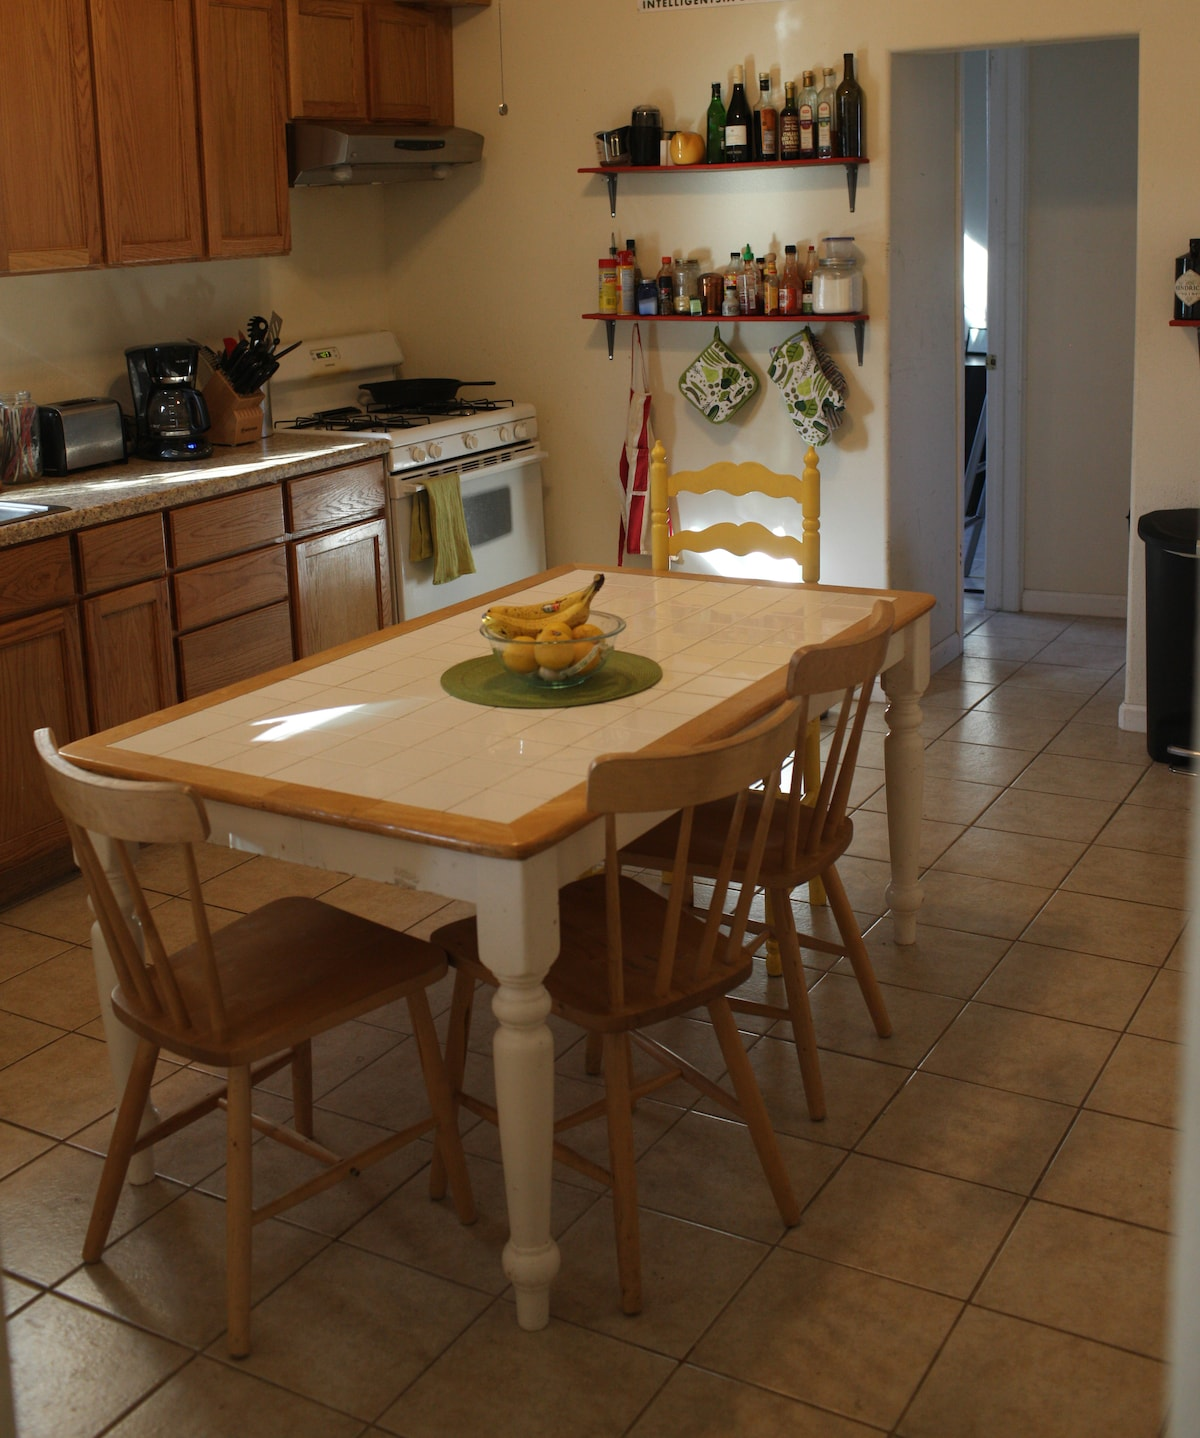 Fully stocked and spacious kitchen